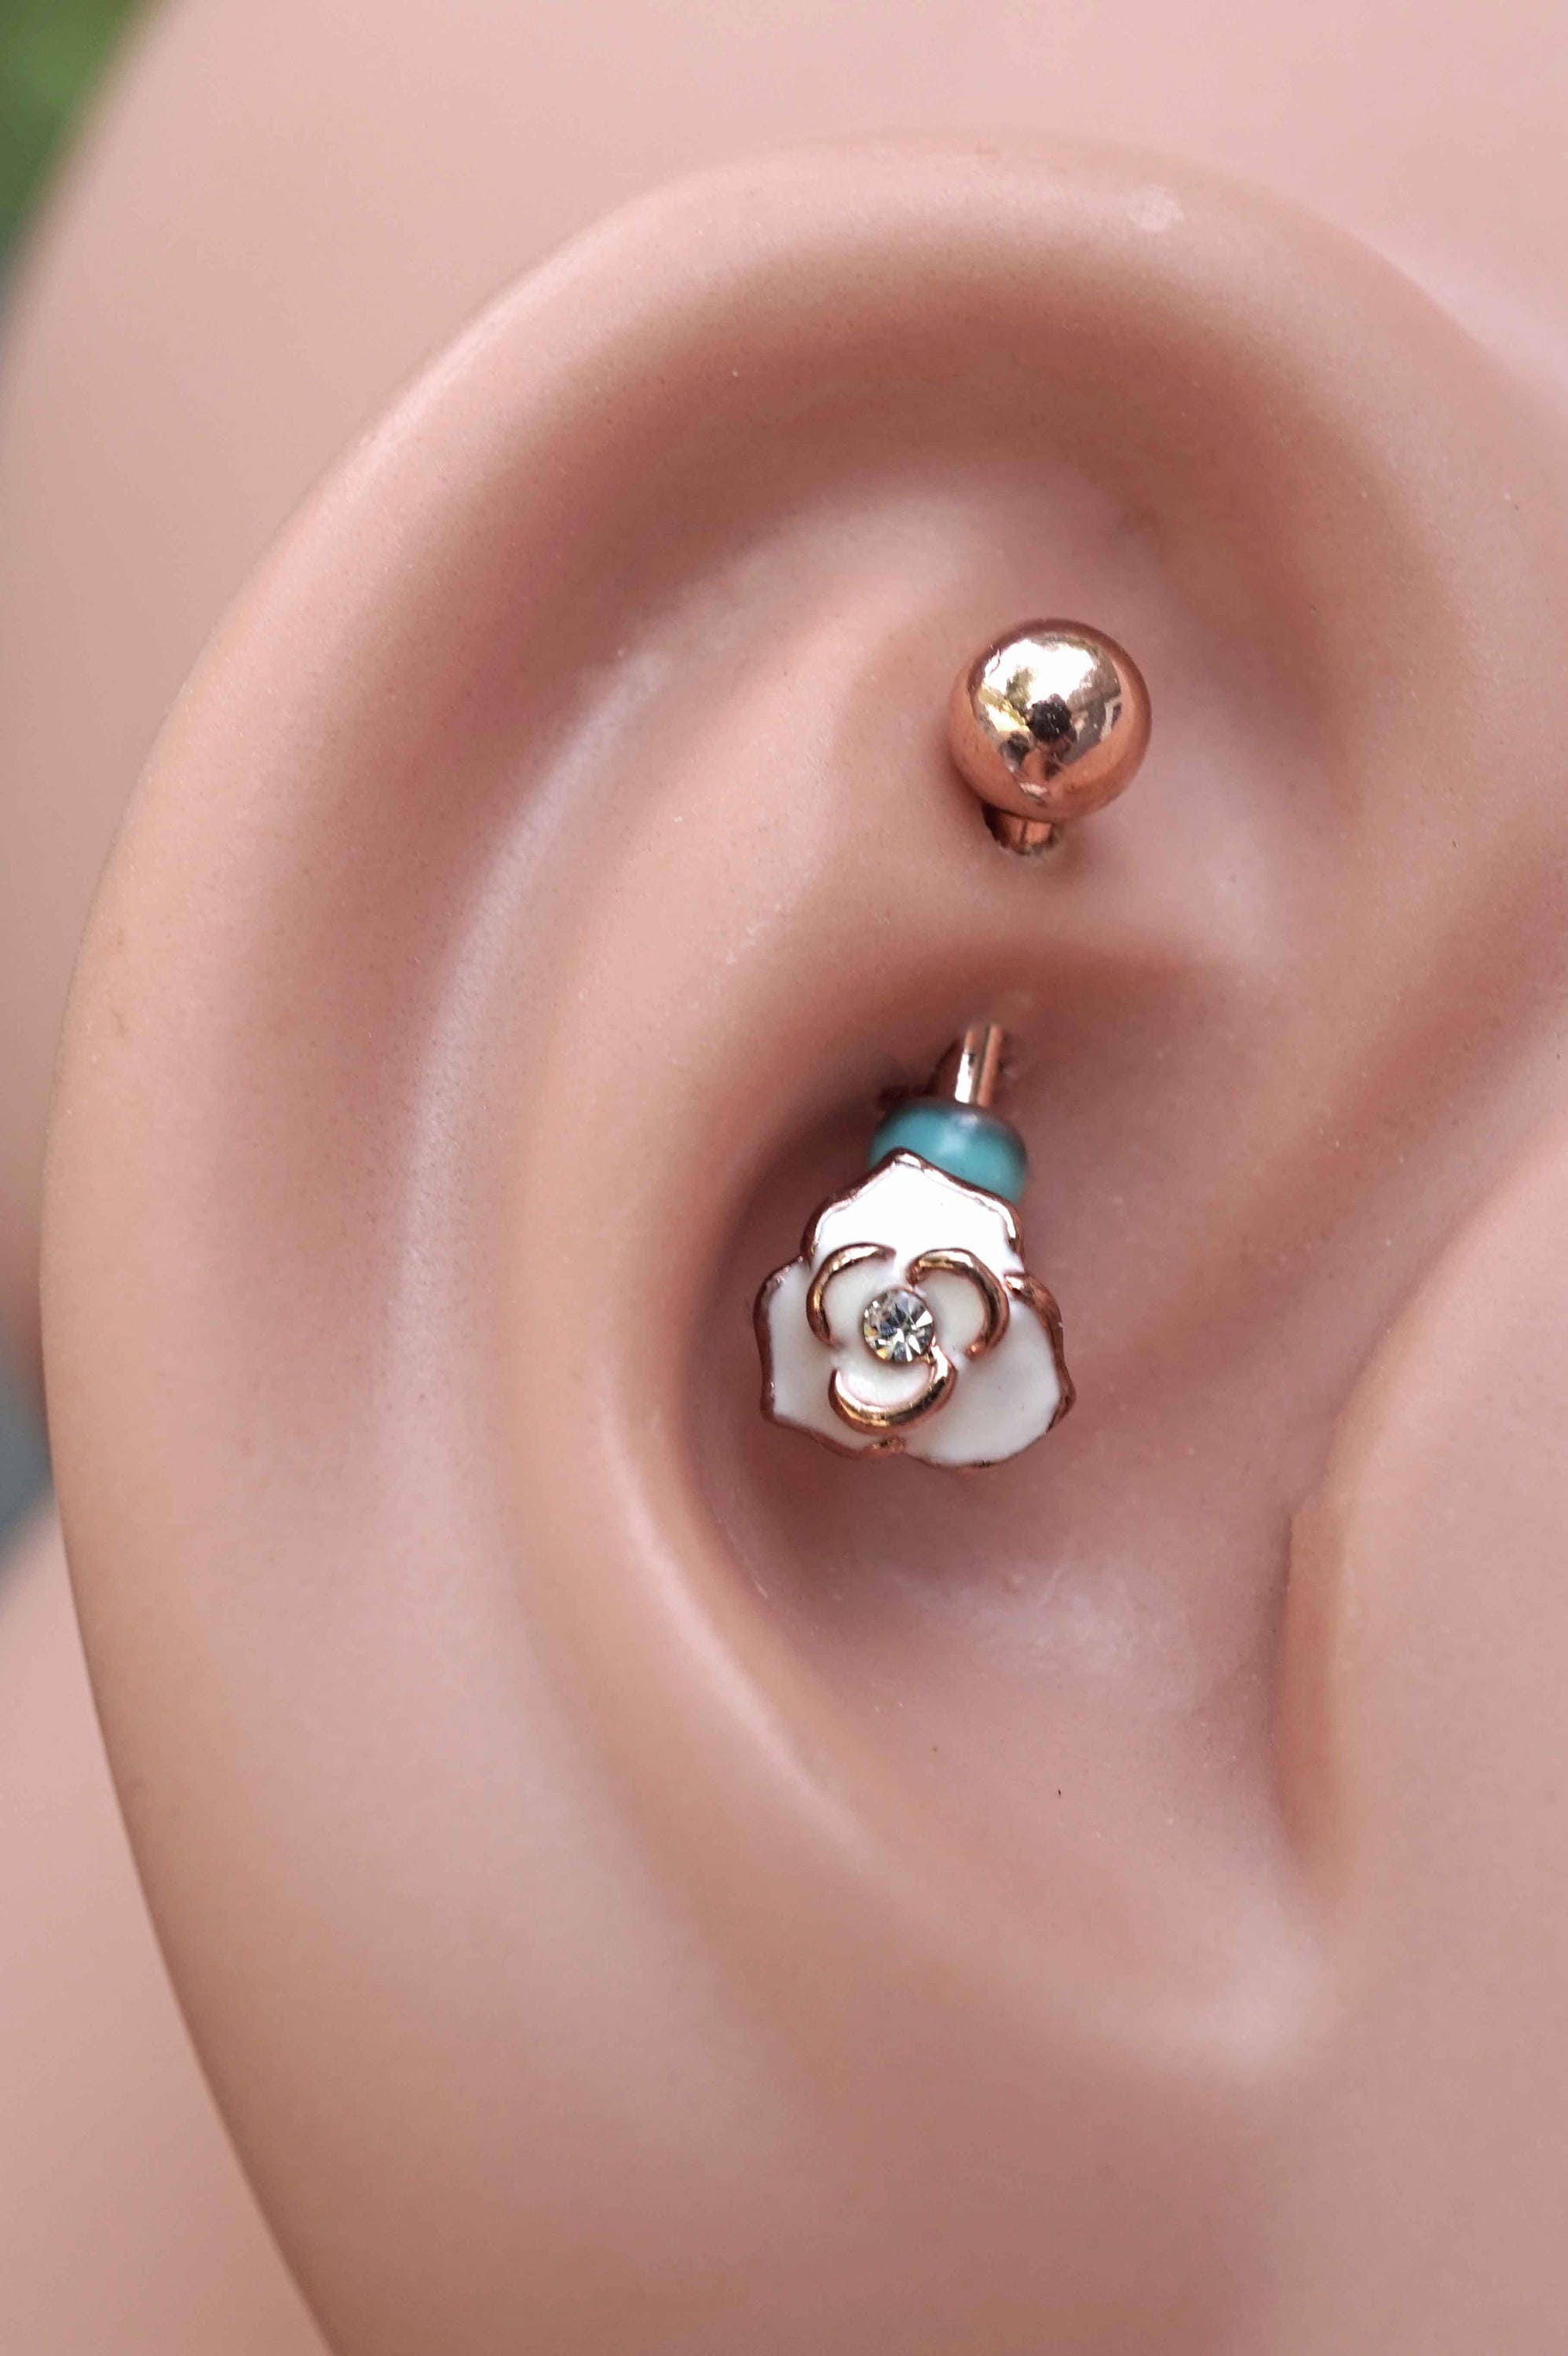 White Rose Rose Gold Rook Earring Daith Piercing Eyebrow Ring